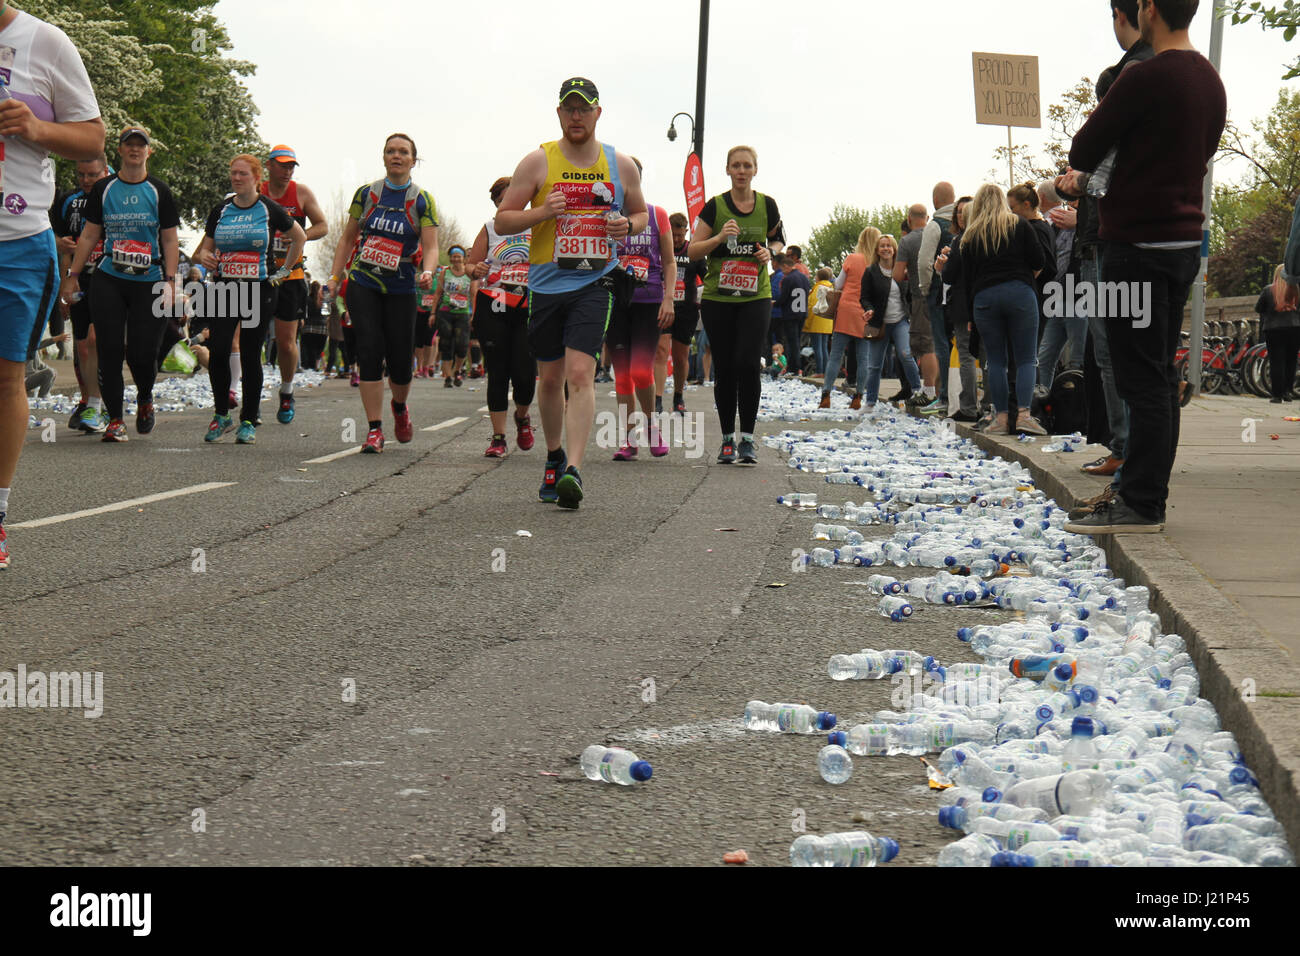 London, UK. 23rd Apr, 2017.   Used water bottles litter the route as runners race past the 17 mile mark at Madchutte Stock Photo